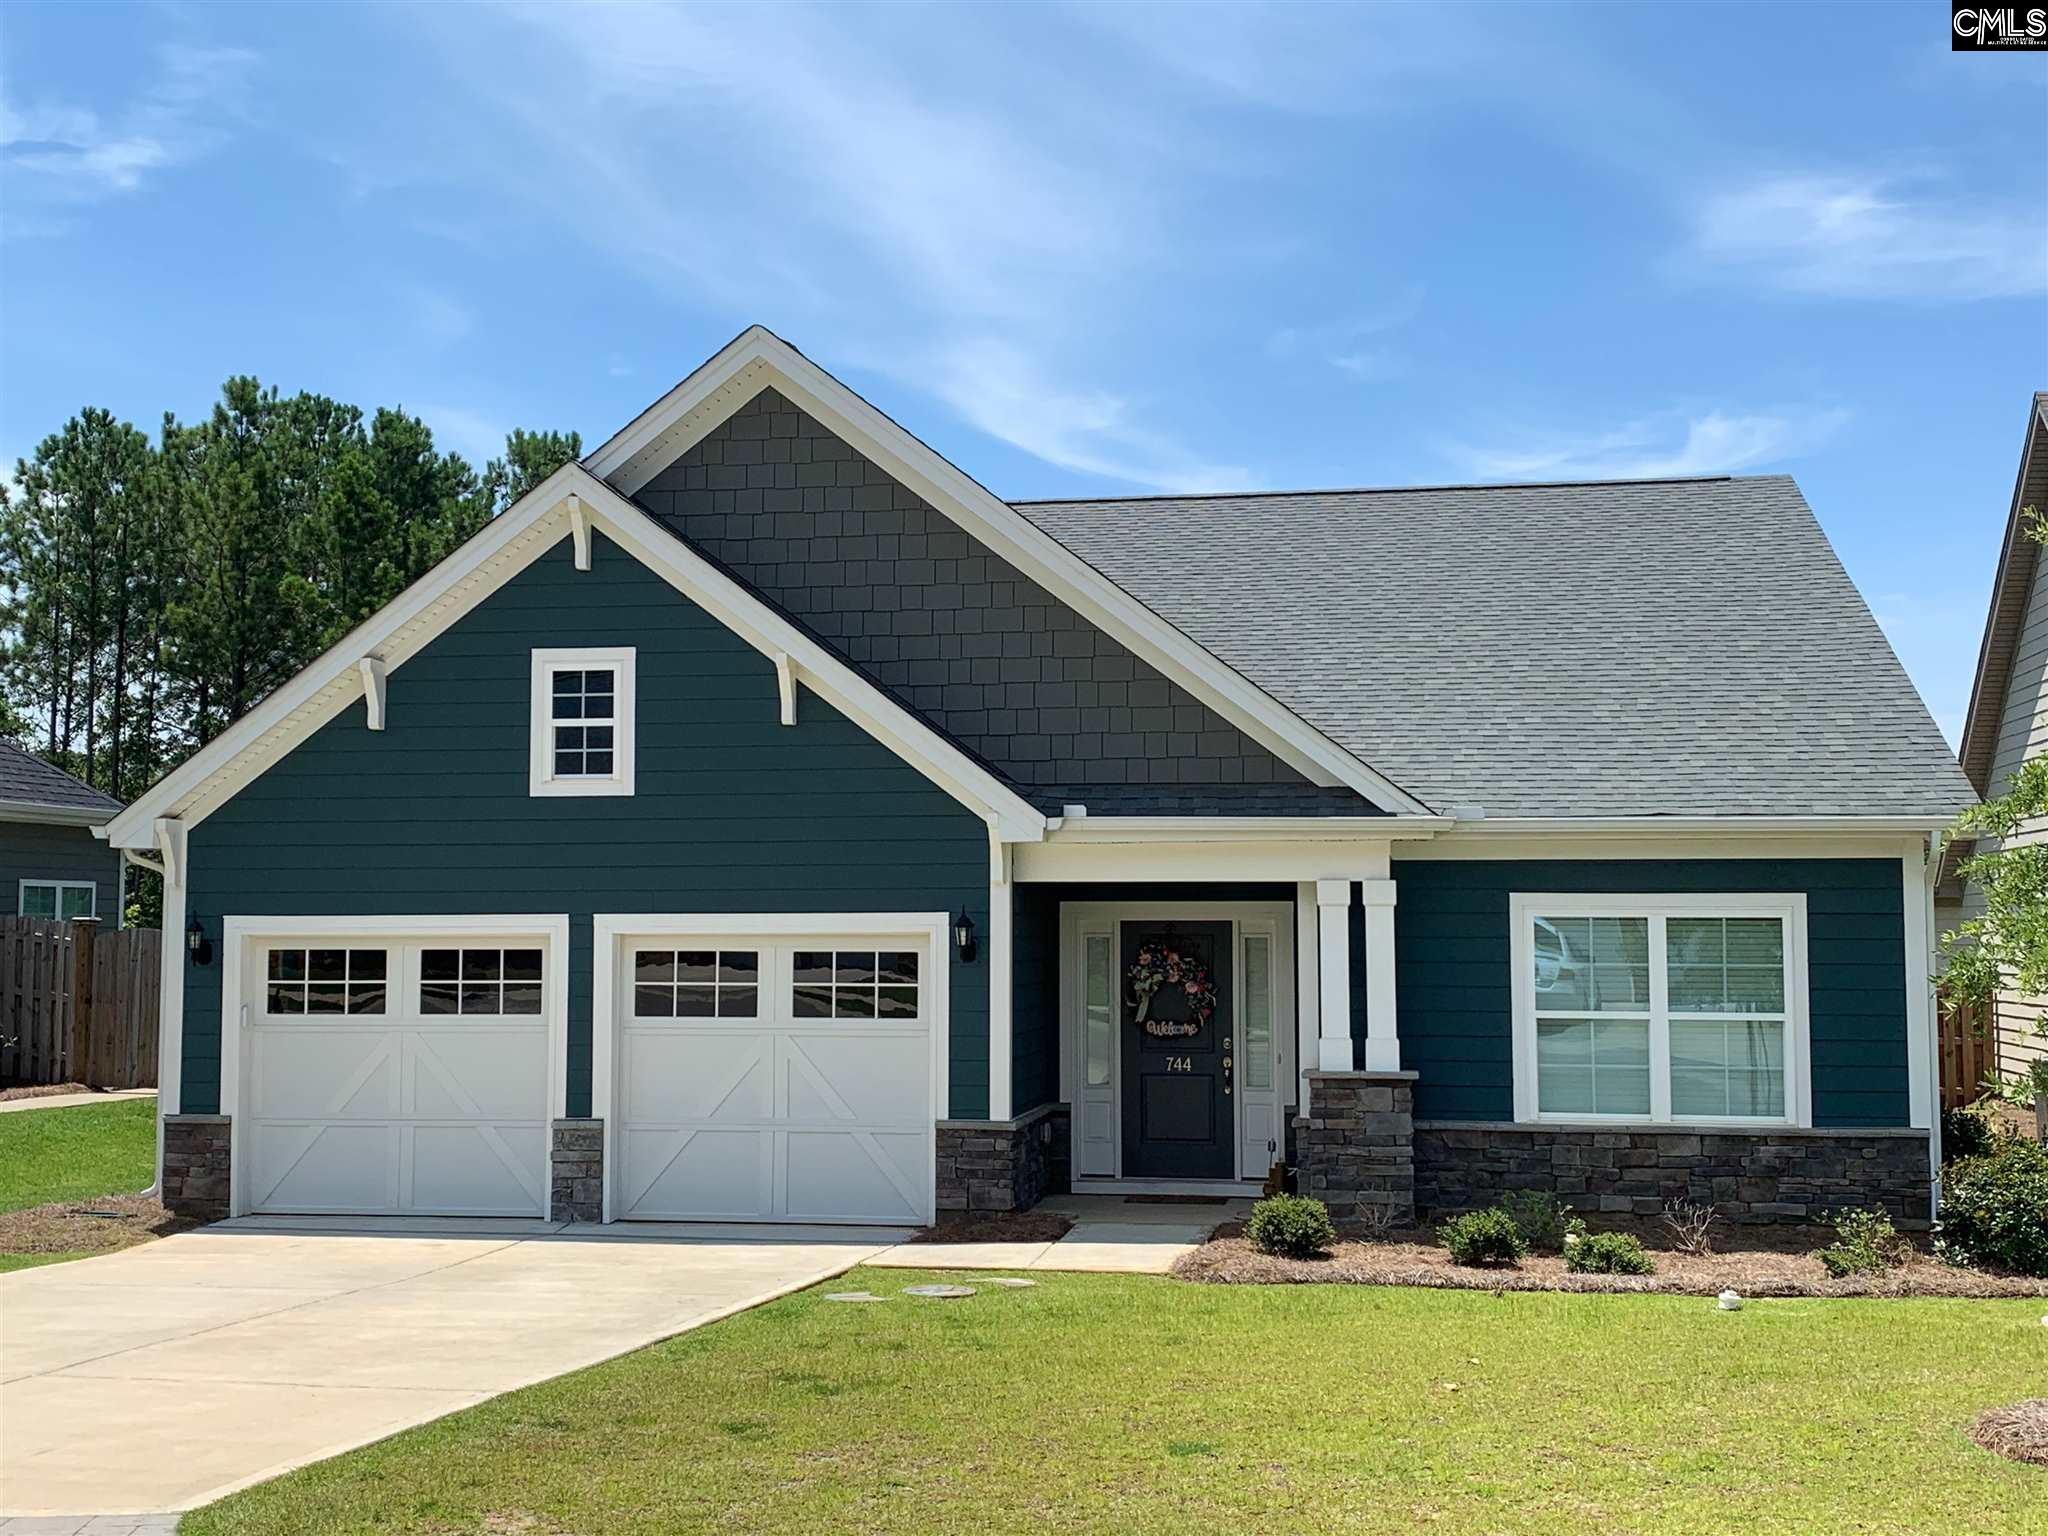 744 Xander Way Chapin, SC 29036